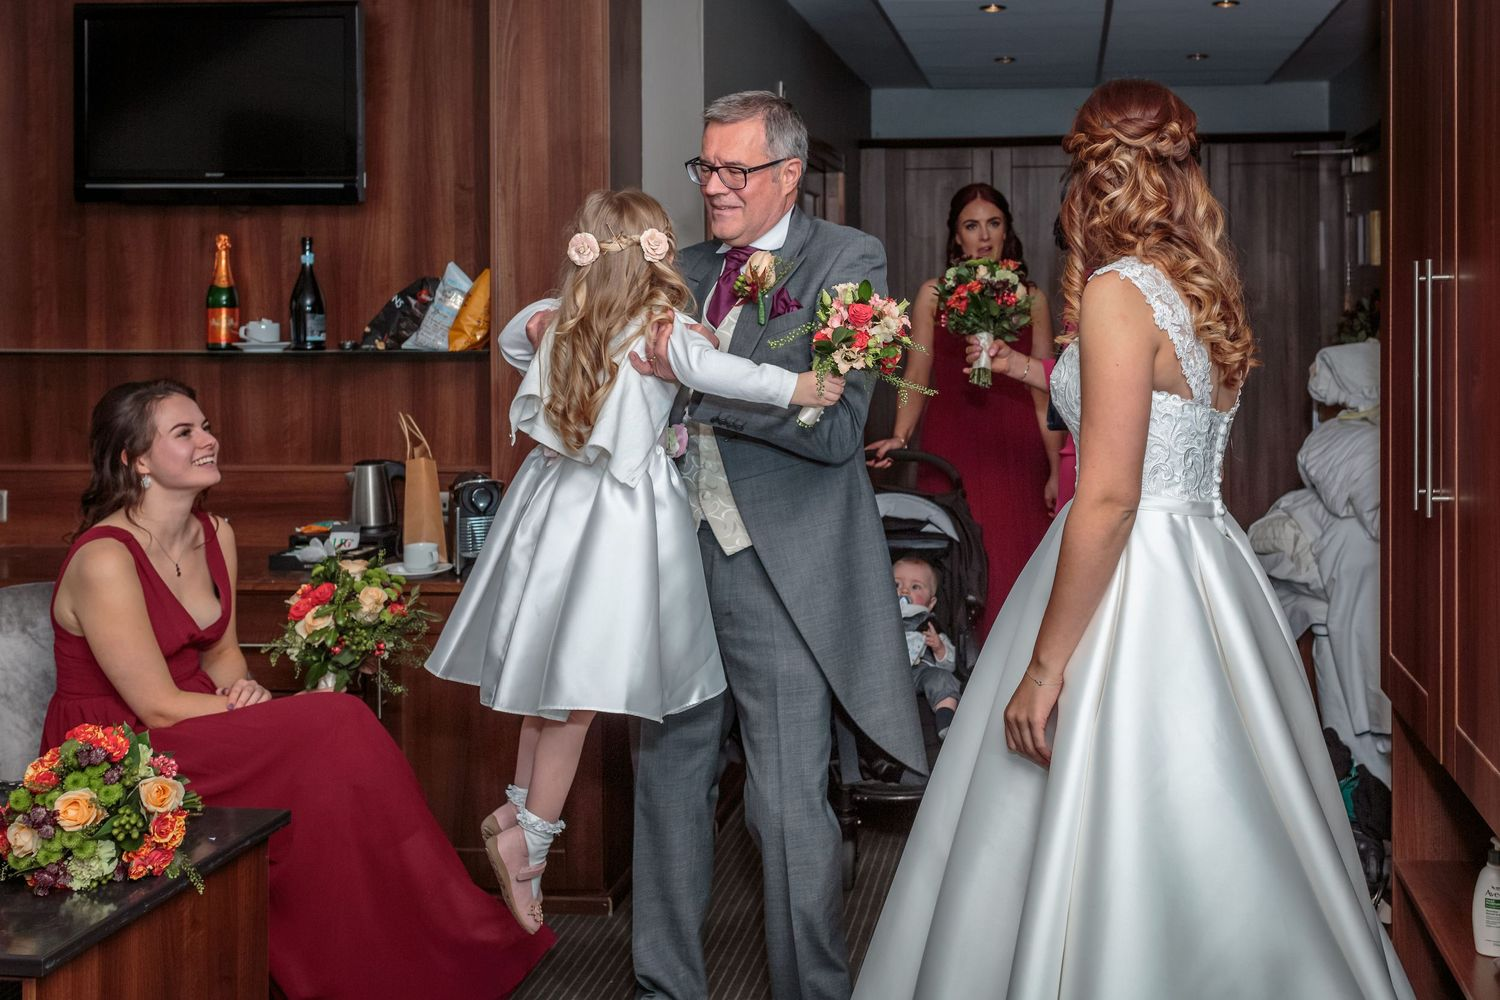 father of the bride lifts up the young flower girl watched by the bride and bridesmaids